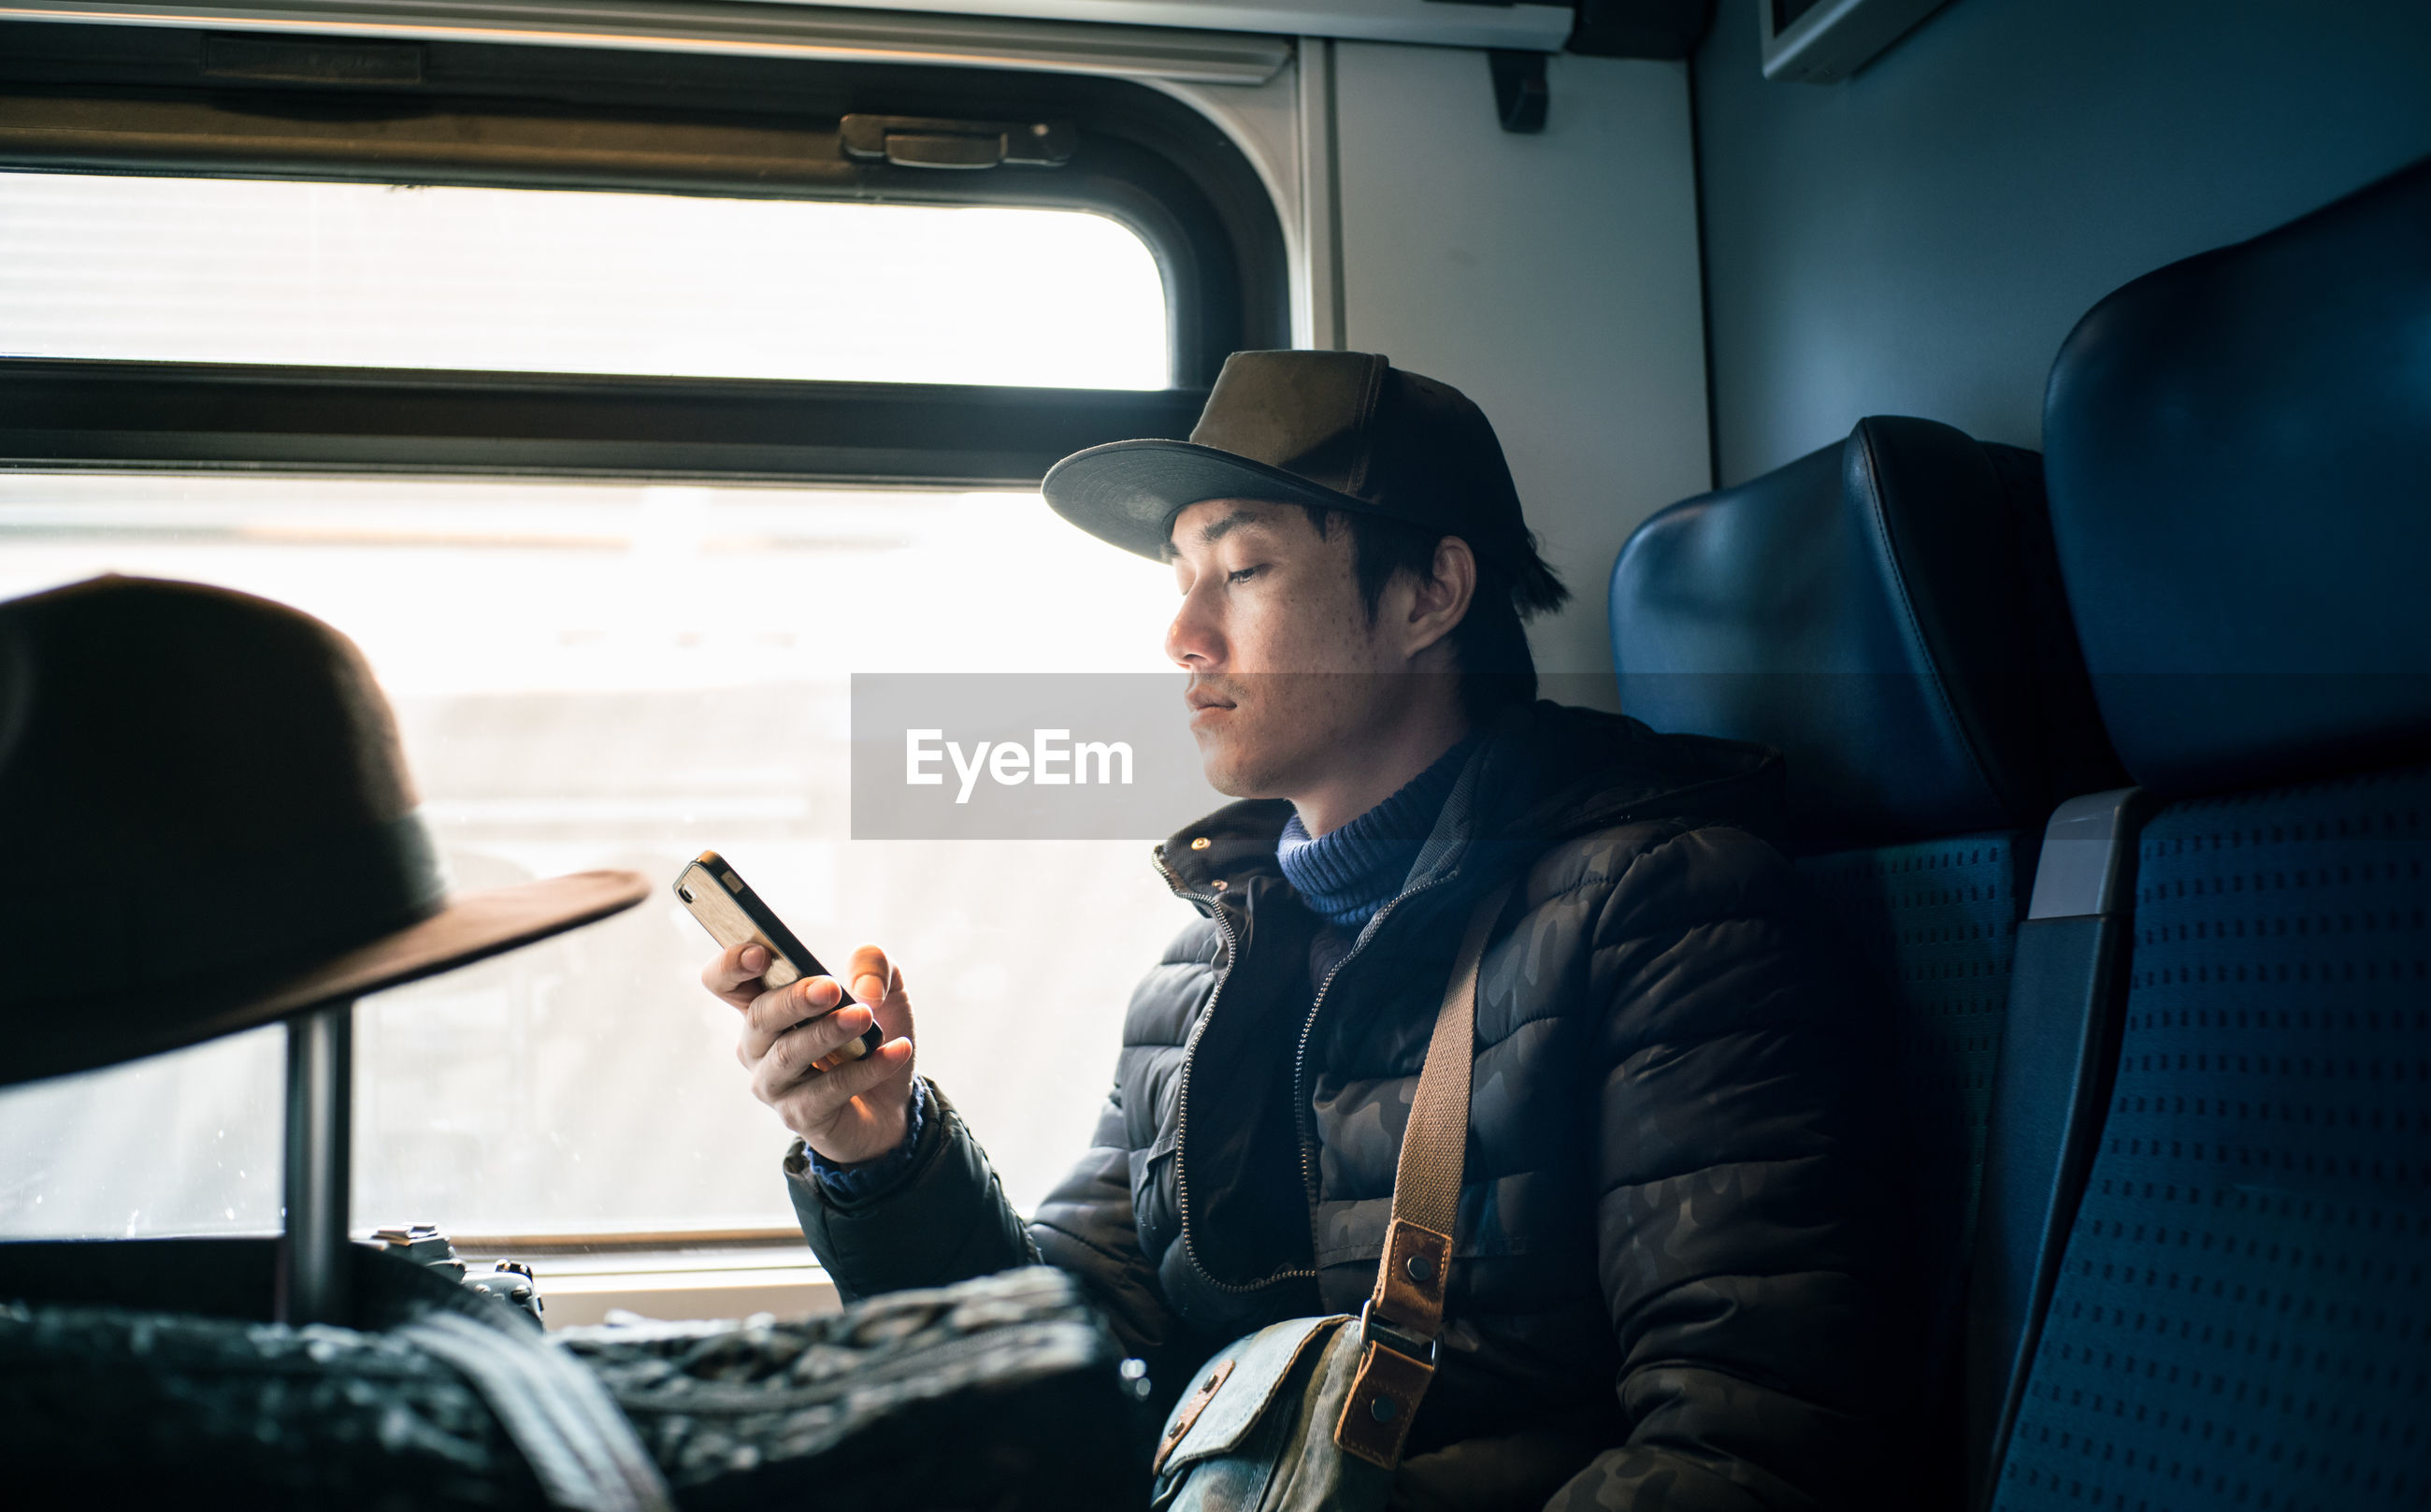 Man using mobile phone while sitting in train